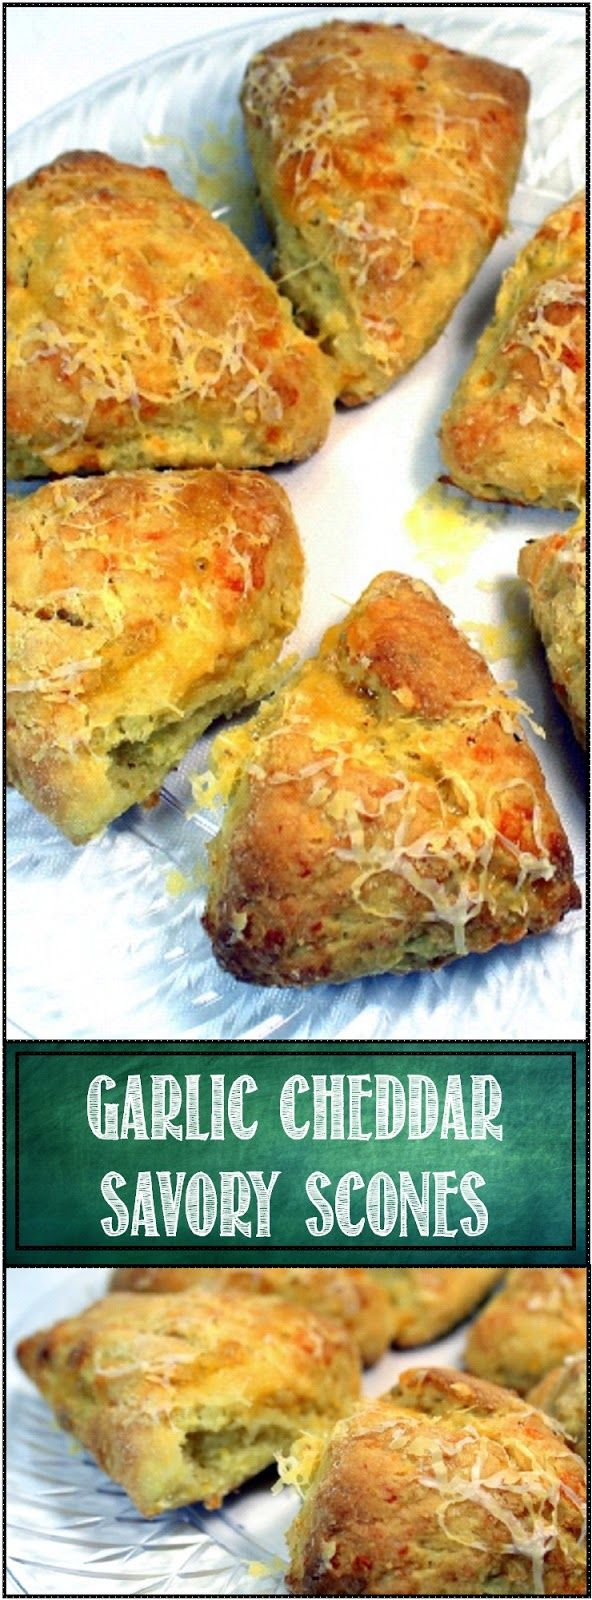 Garlic Cheddar Savory Scones OH BOY... SCONES! And these are wonderful savory scones, a little bit sweet... A little bit nutty (there is a secret ingredient)... And a lot tender and moist (Yet a second secret ingredient that makes these extra moist). Add in the Earthy cheesy goodness of the Cheddar and the Savory Spicy Garlic and Bingo Bango Bongo you have a Tasty treat for breakfast, a side for dinner or a treat for an afternoon Tea!